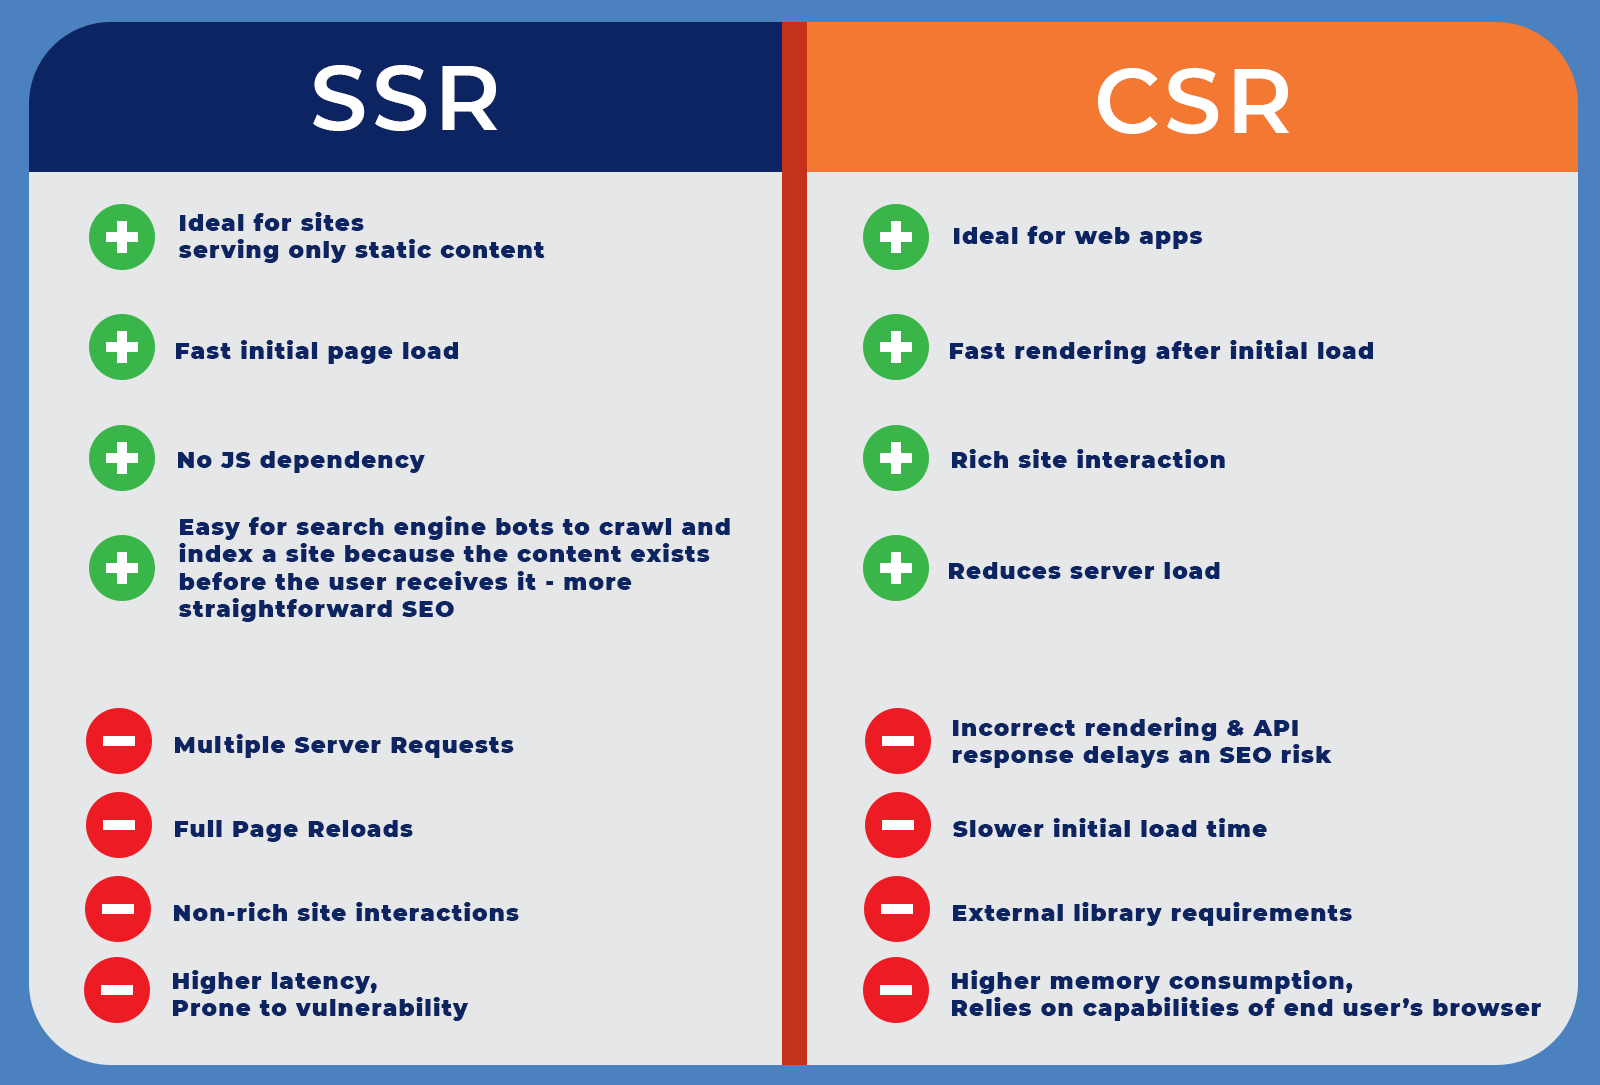 SSR vs CSR comparison table of strengths and weaknesses